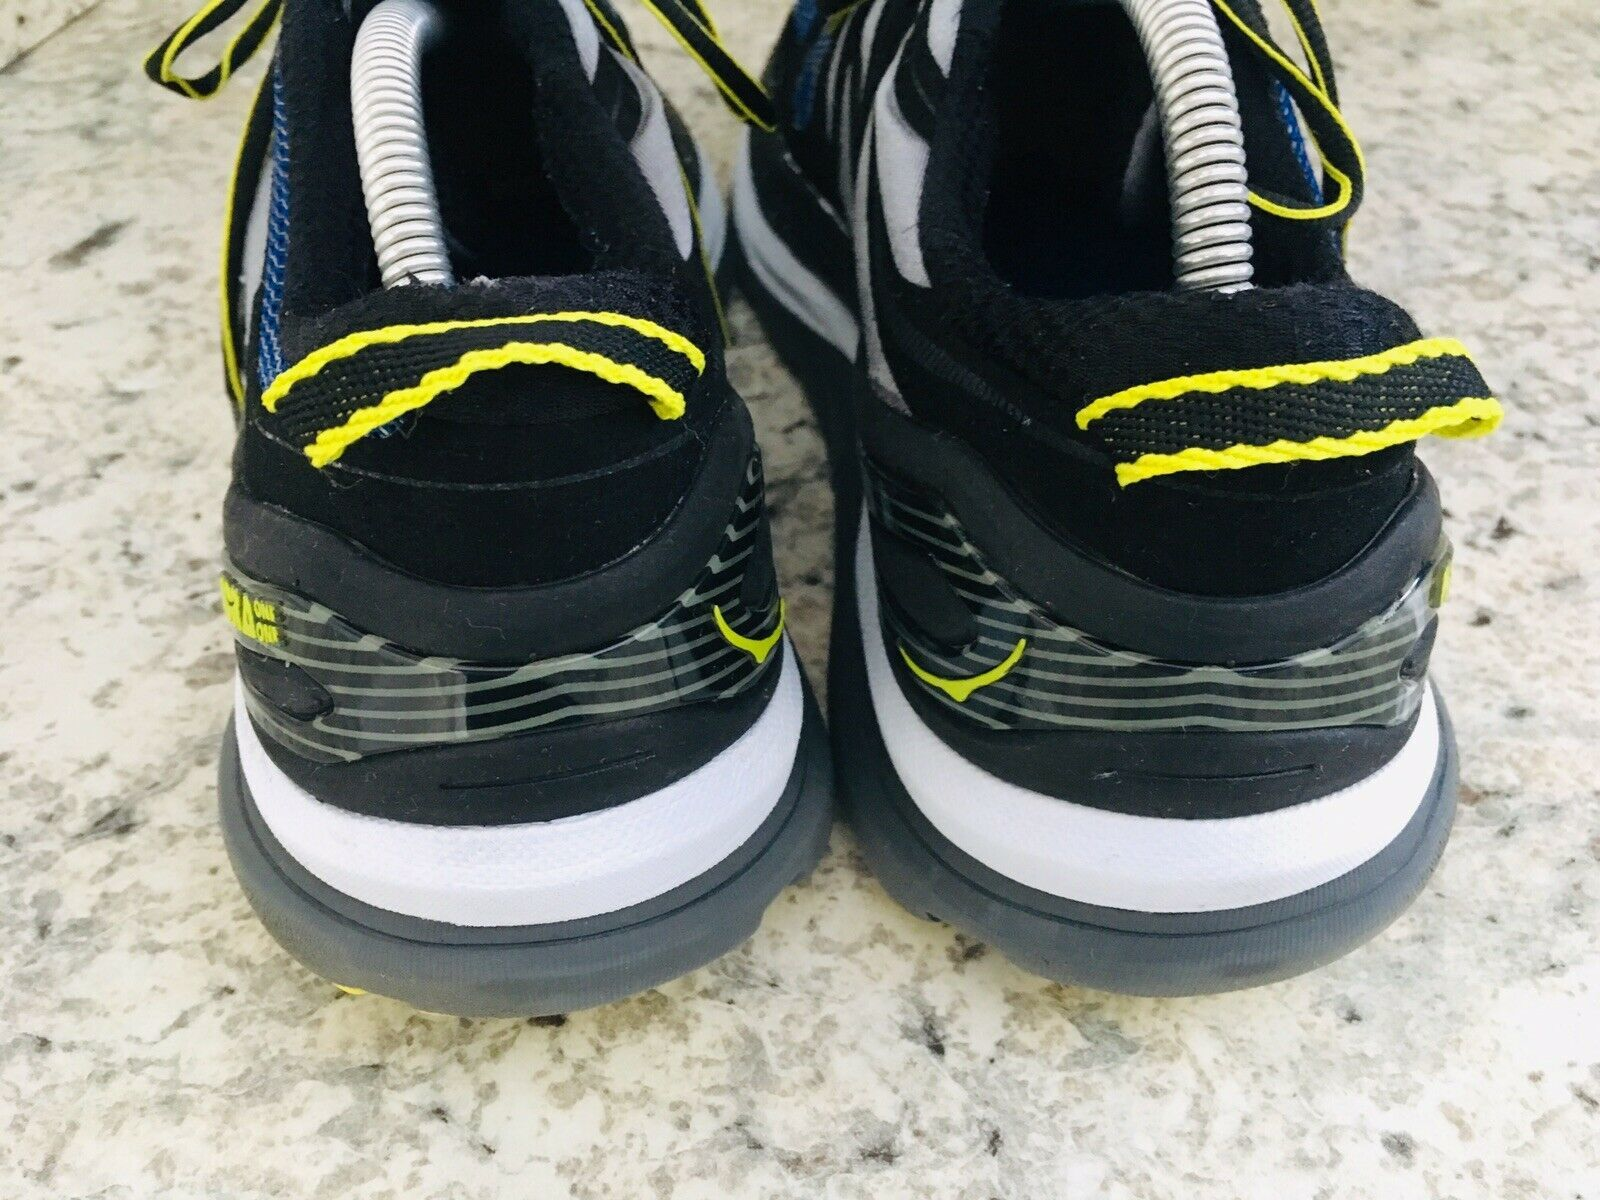 HOKA One One Constant Blue Yellow & Black running Shoes Men's SIZE 10 image 4